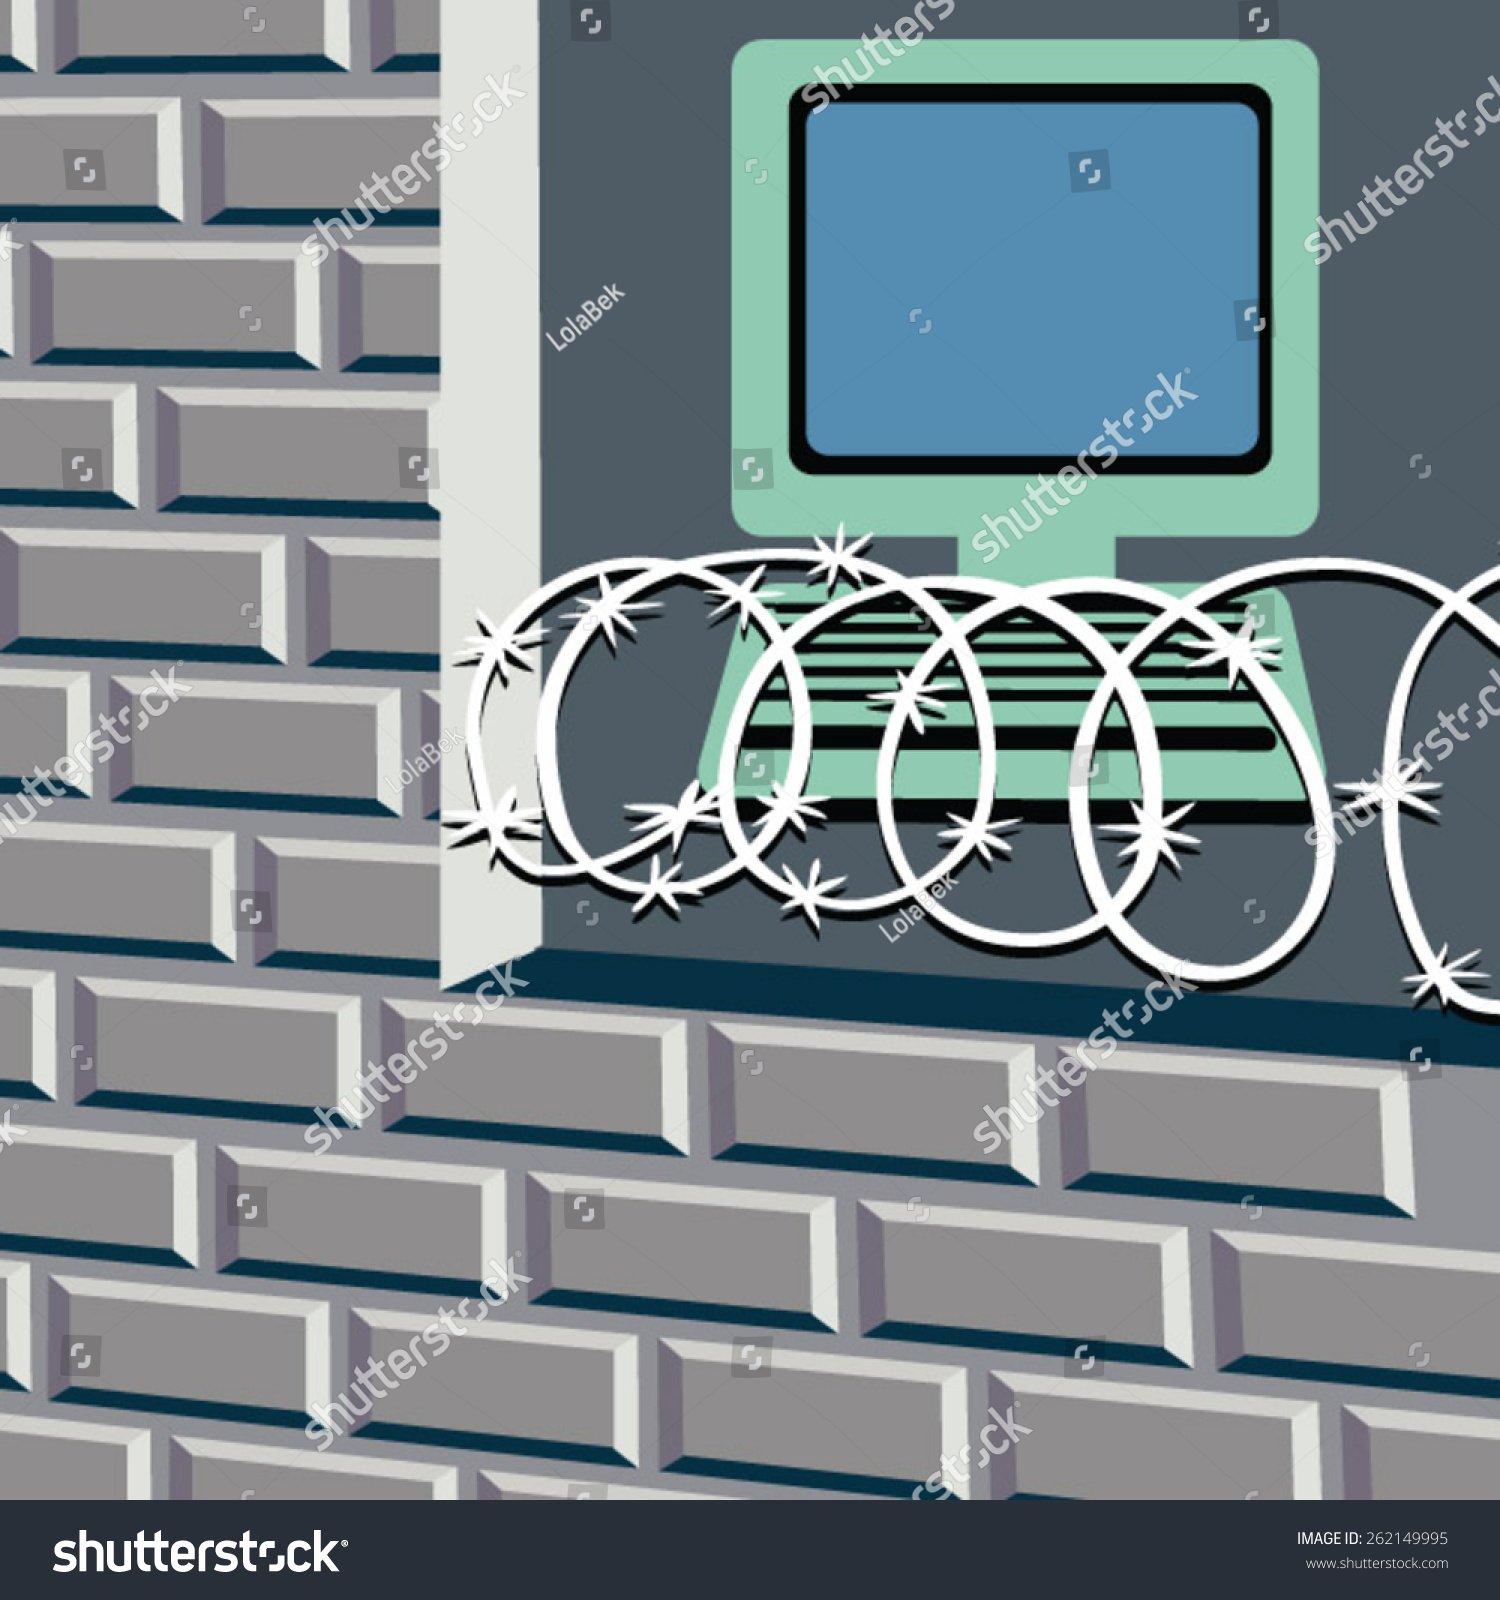 Computer Behind Razor Wire Brick Wall Stock Vector Royalty Free Wiring And